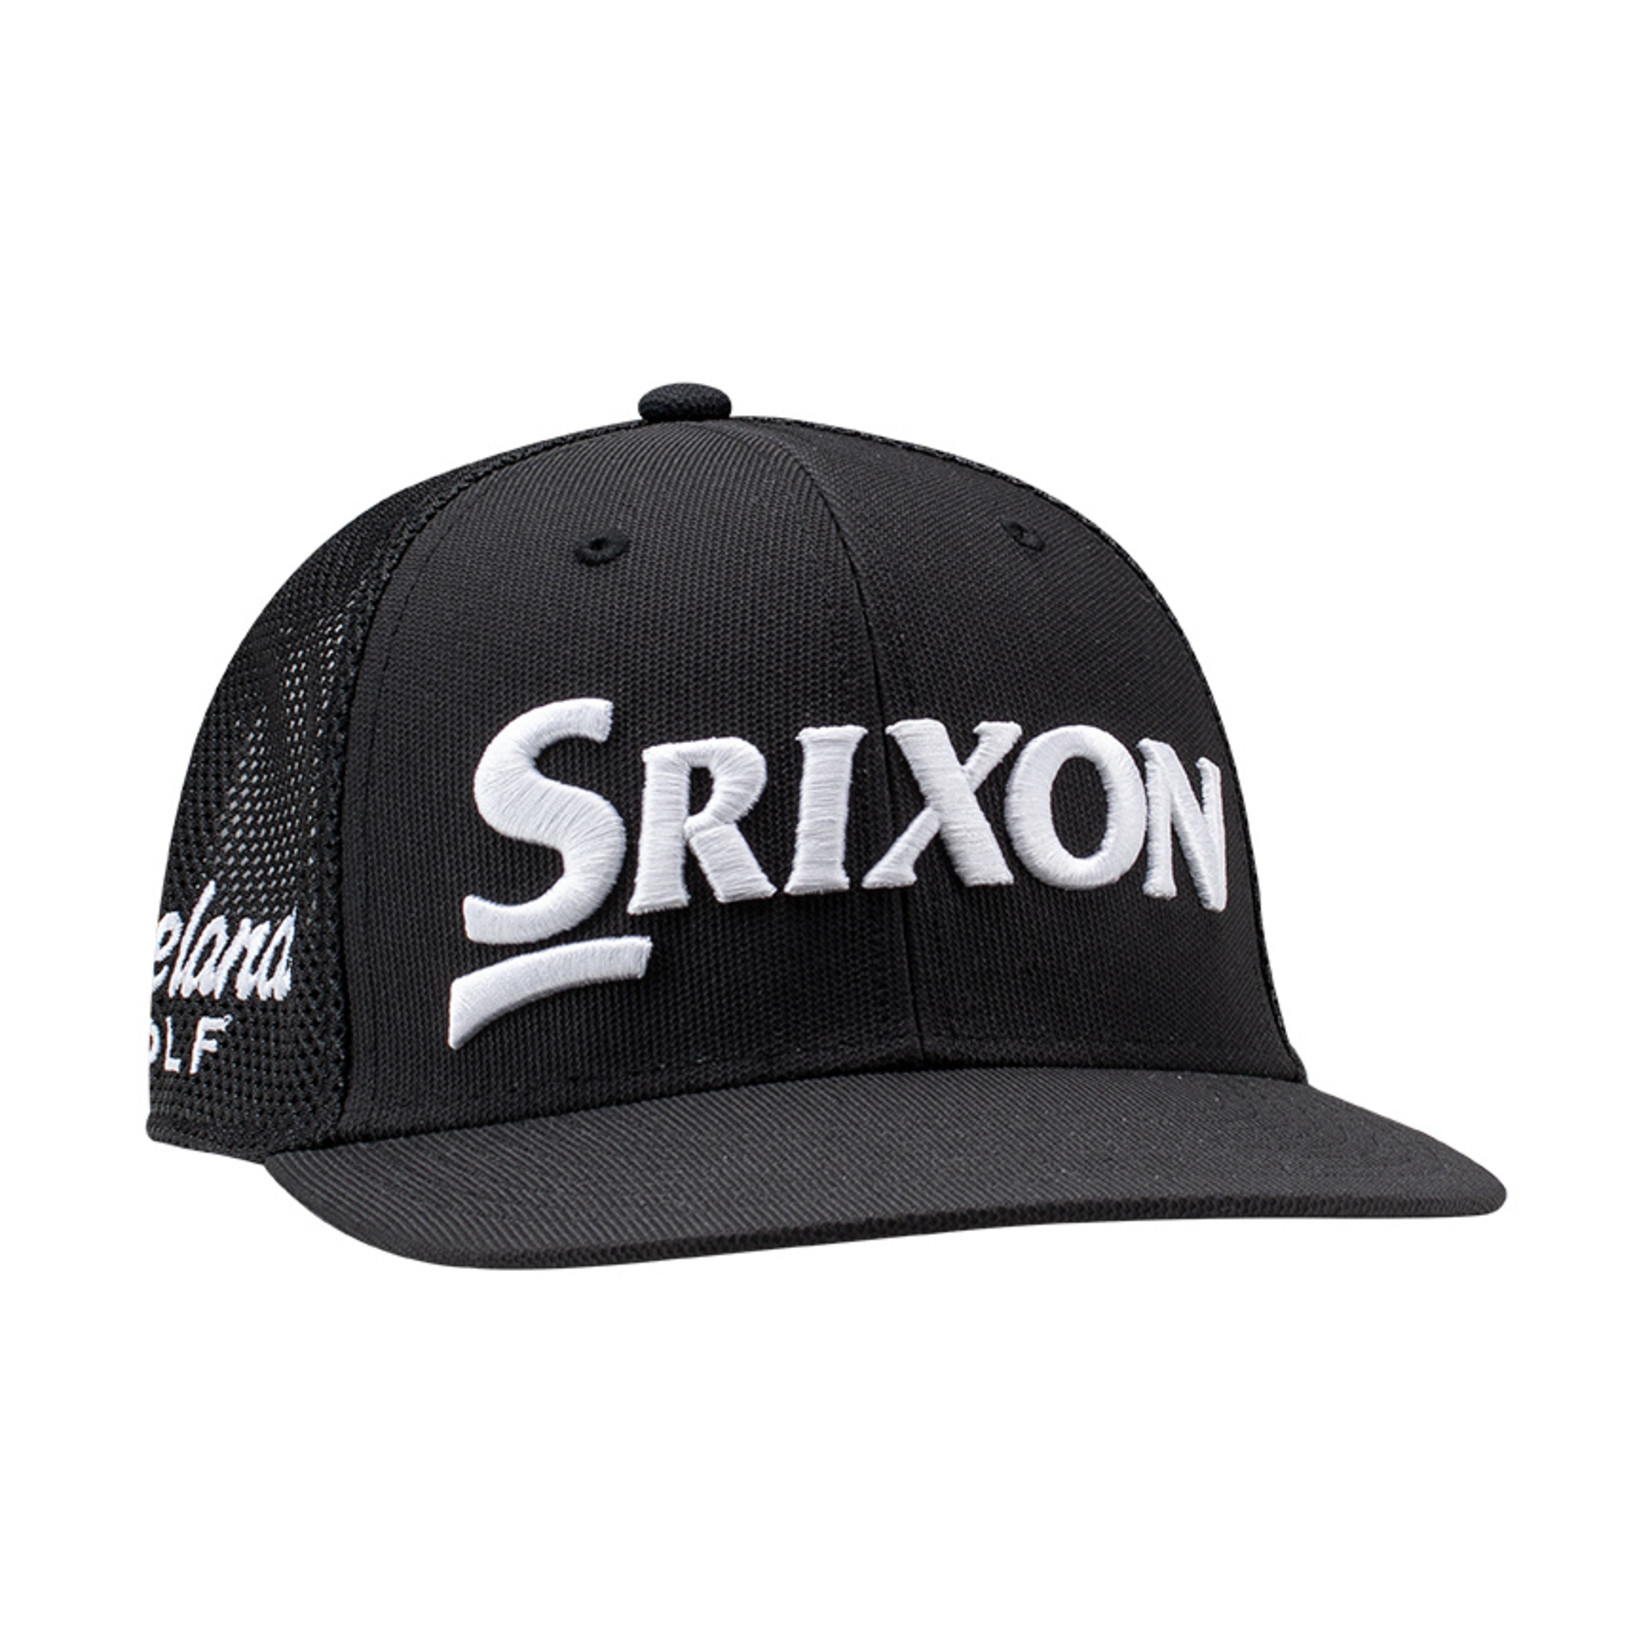 Srixon Srixon Tour Trucker Men's Hat